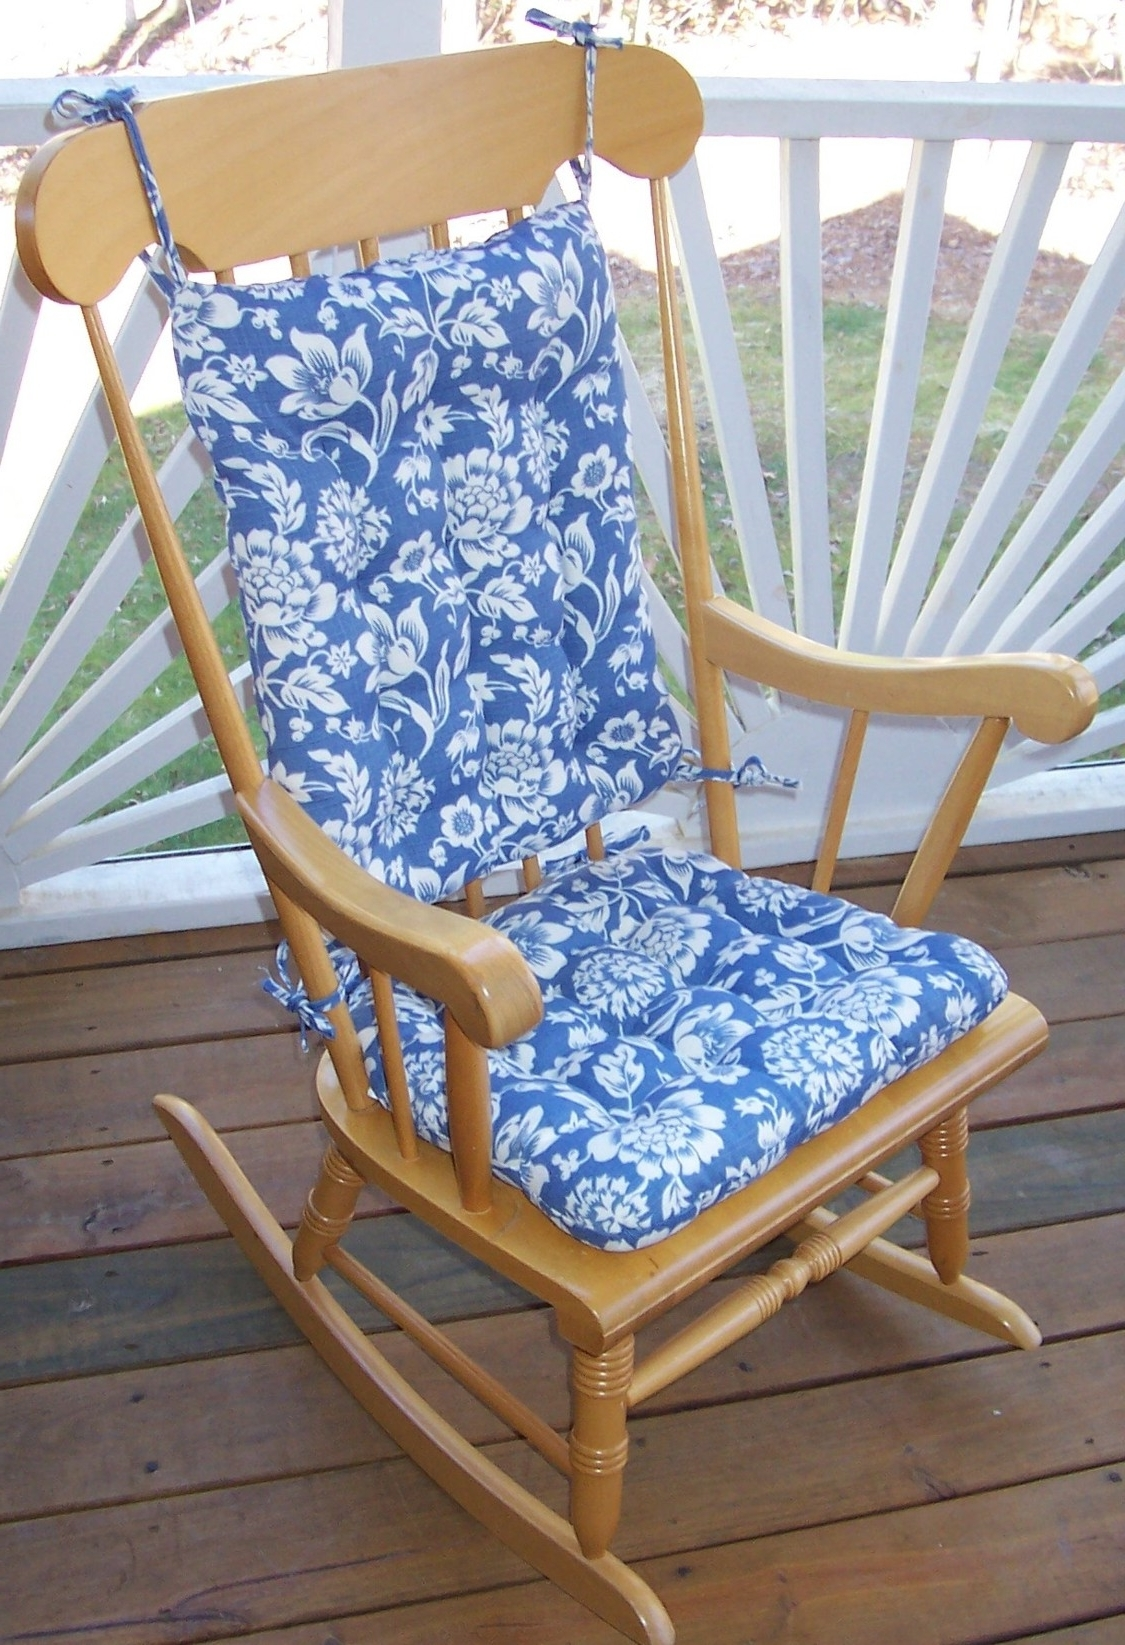 Most Recently Released Yellow Outdoor Rocking Chair Cushions – Chair Design Ideas Inside Yellow Outdoor Rocking Chairs (View 6 of 15)